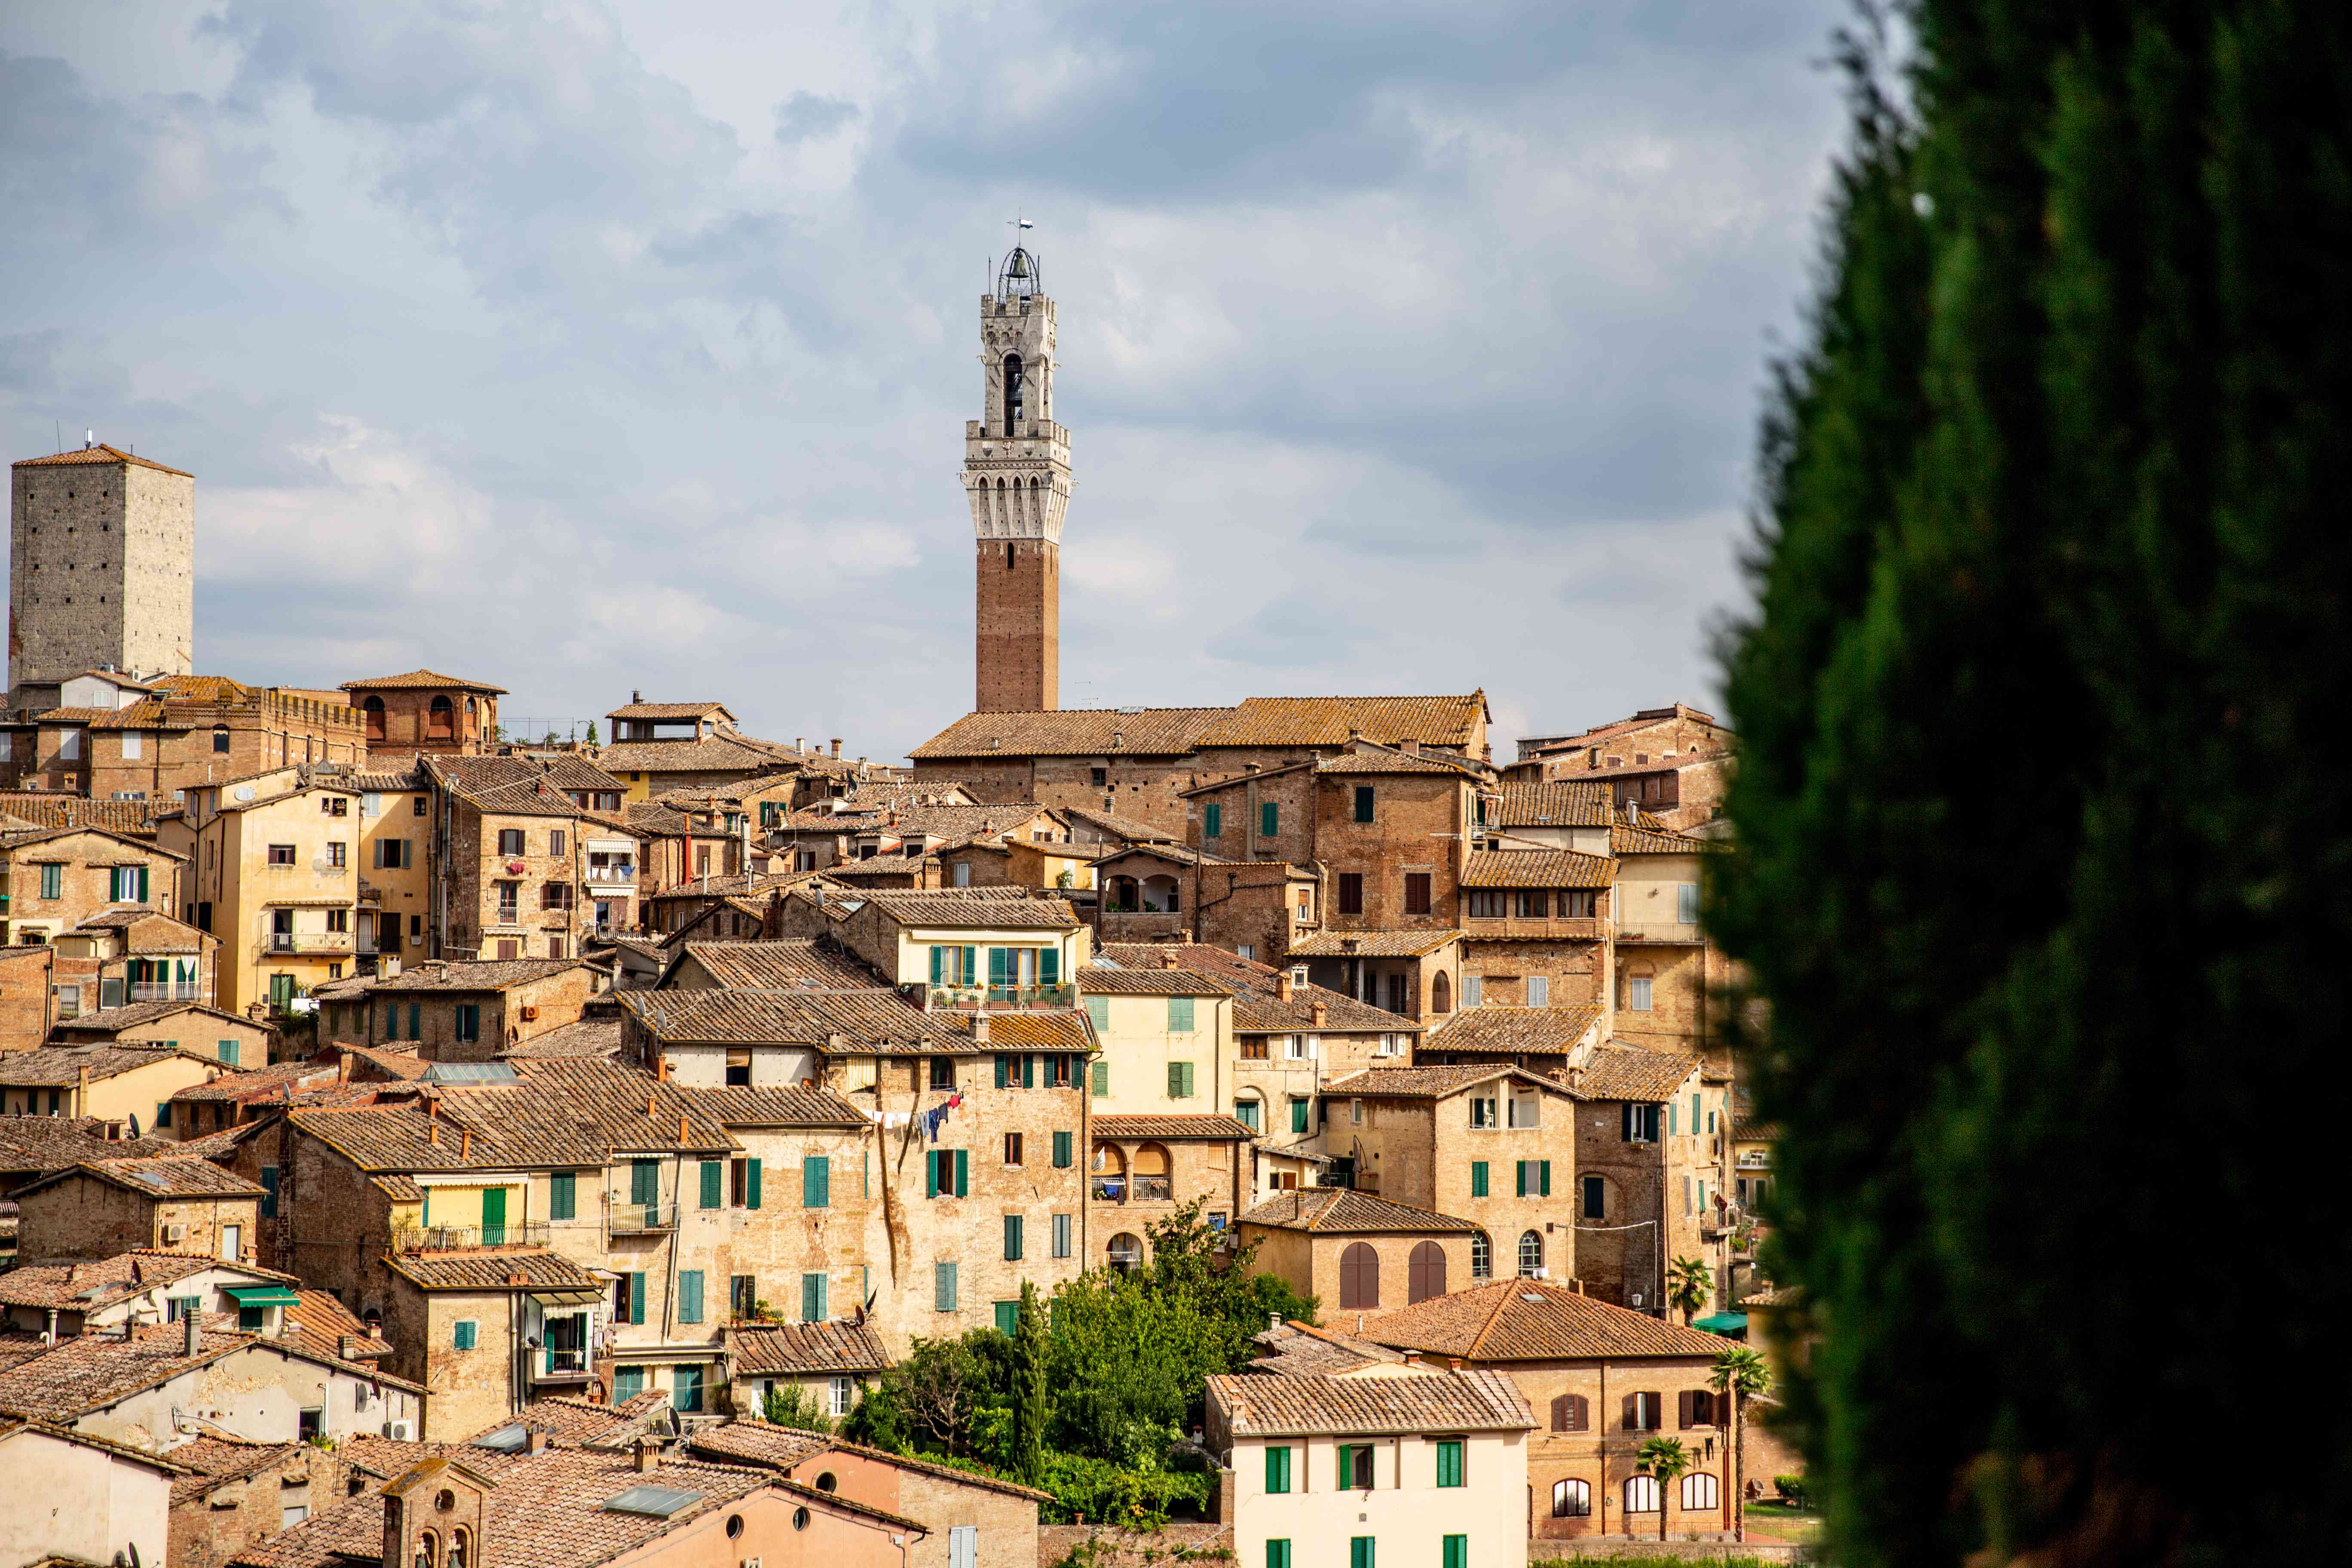 View of Siena from afar